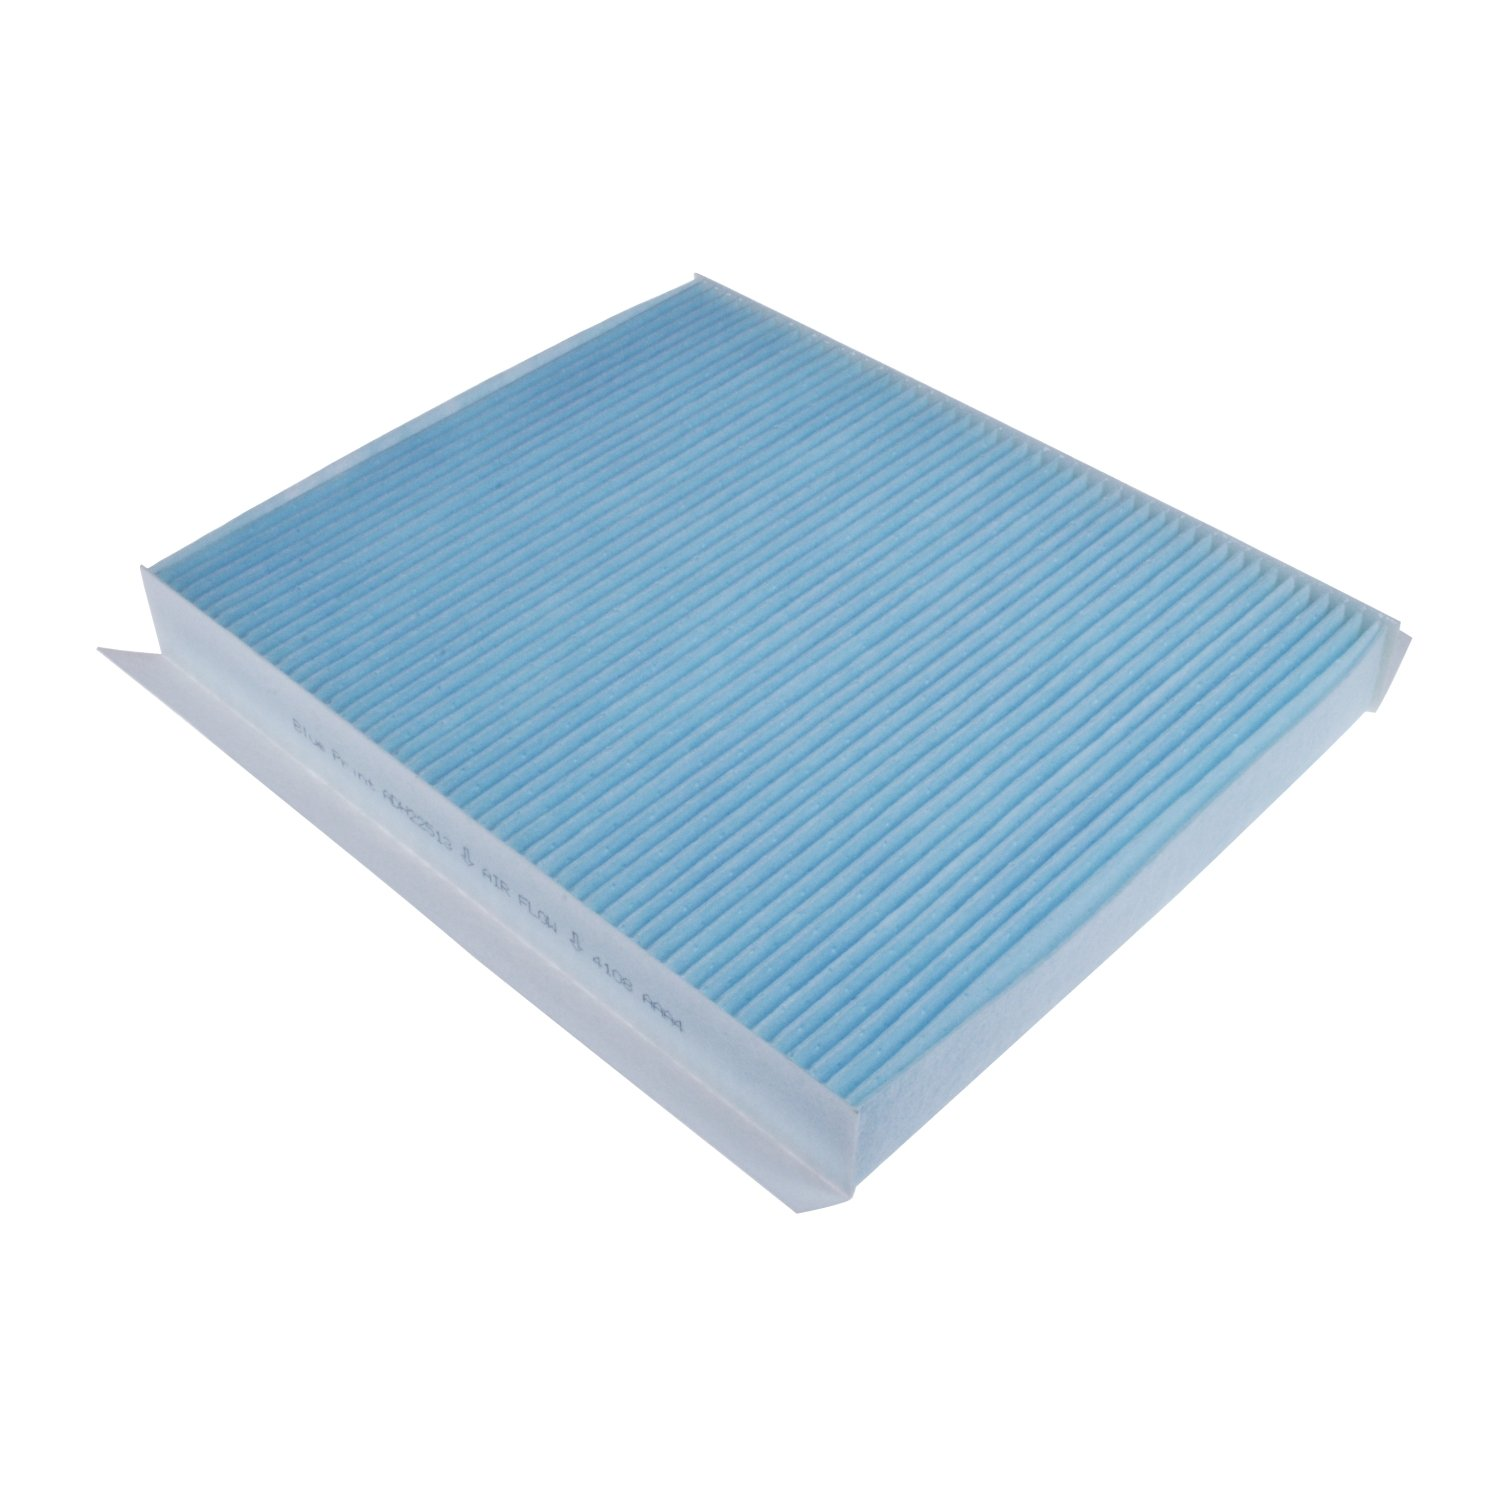 Blue Print ADH22513 cabin filter Pack of 1